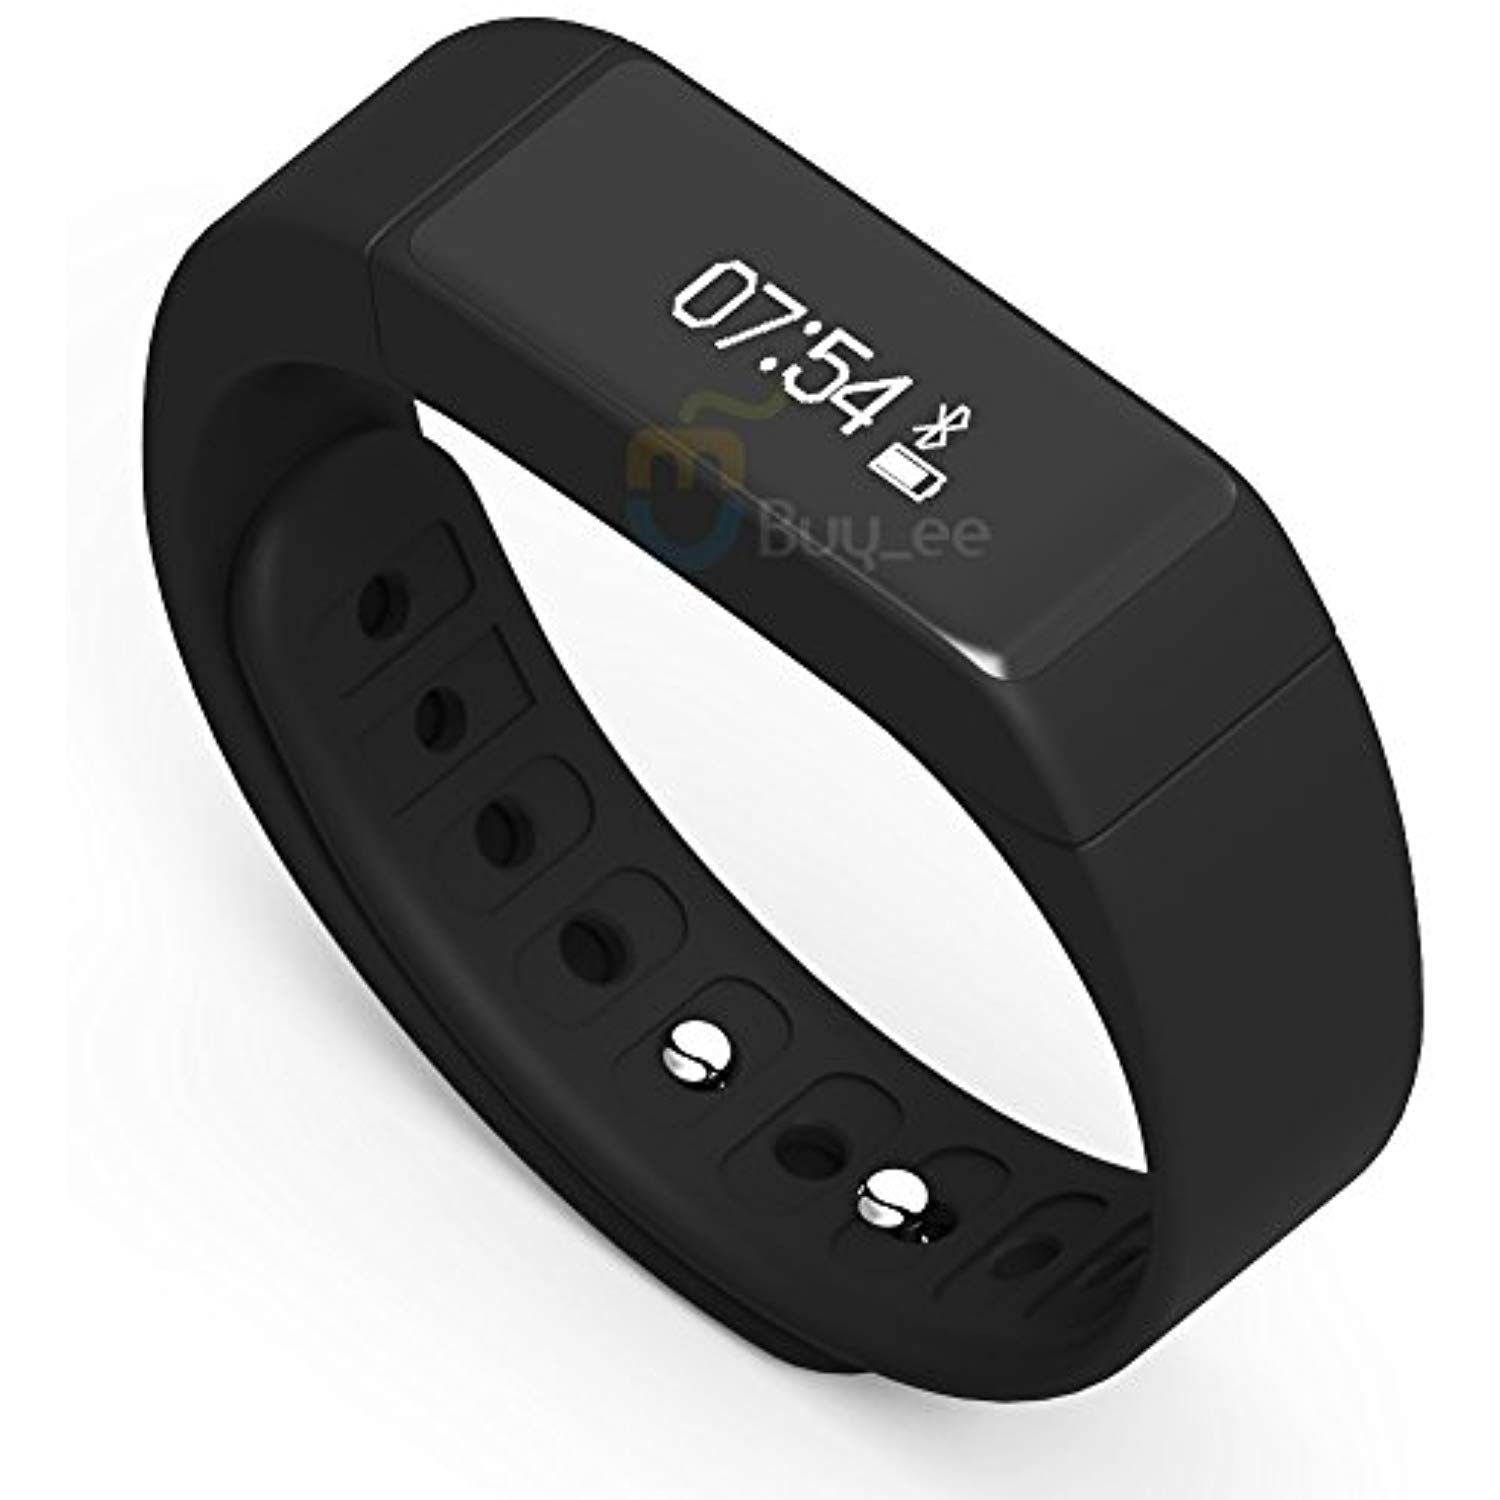 Buyee Wireless Bluetooth Activity and Health Pedometer